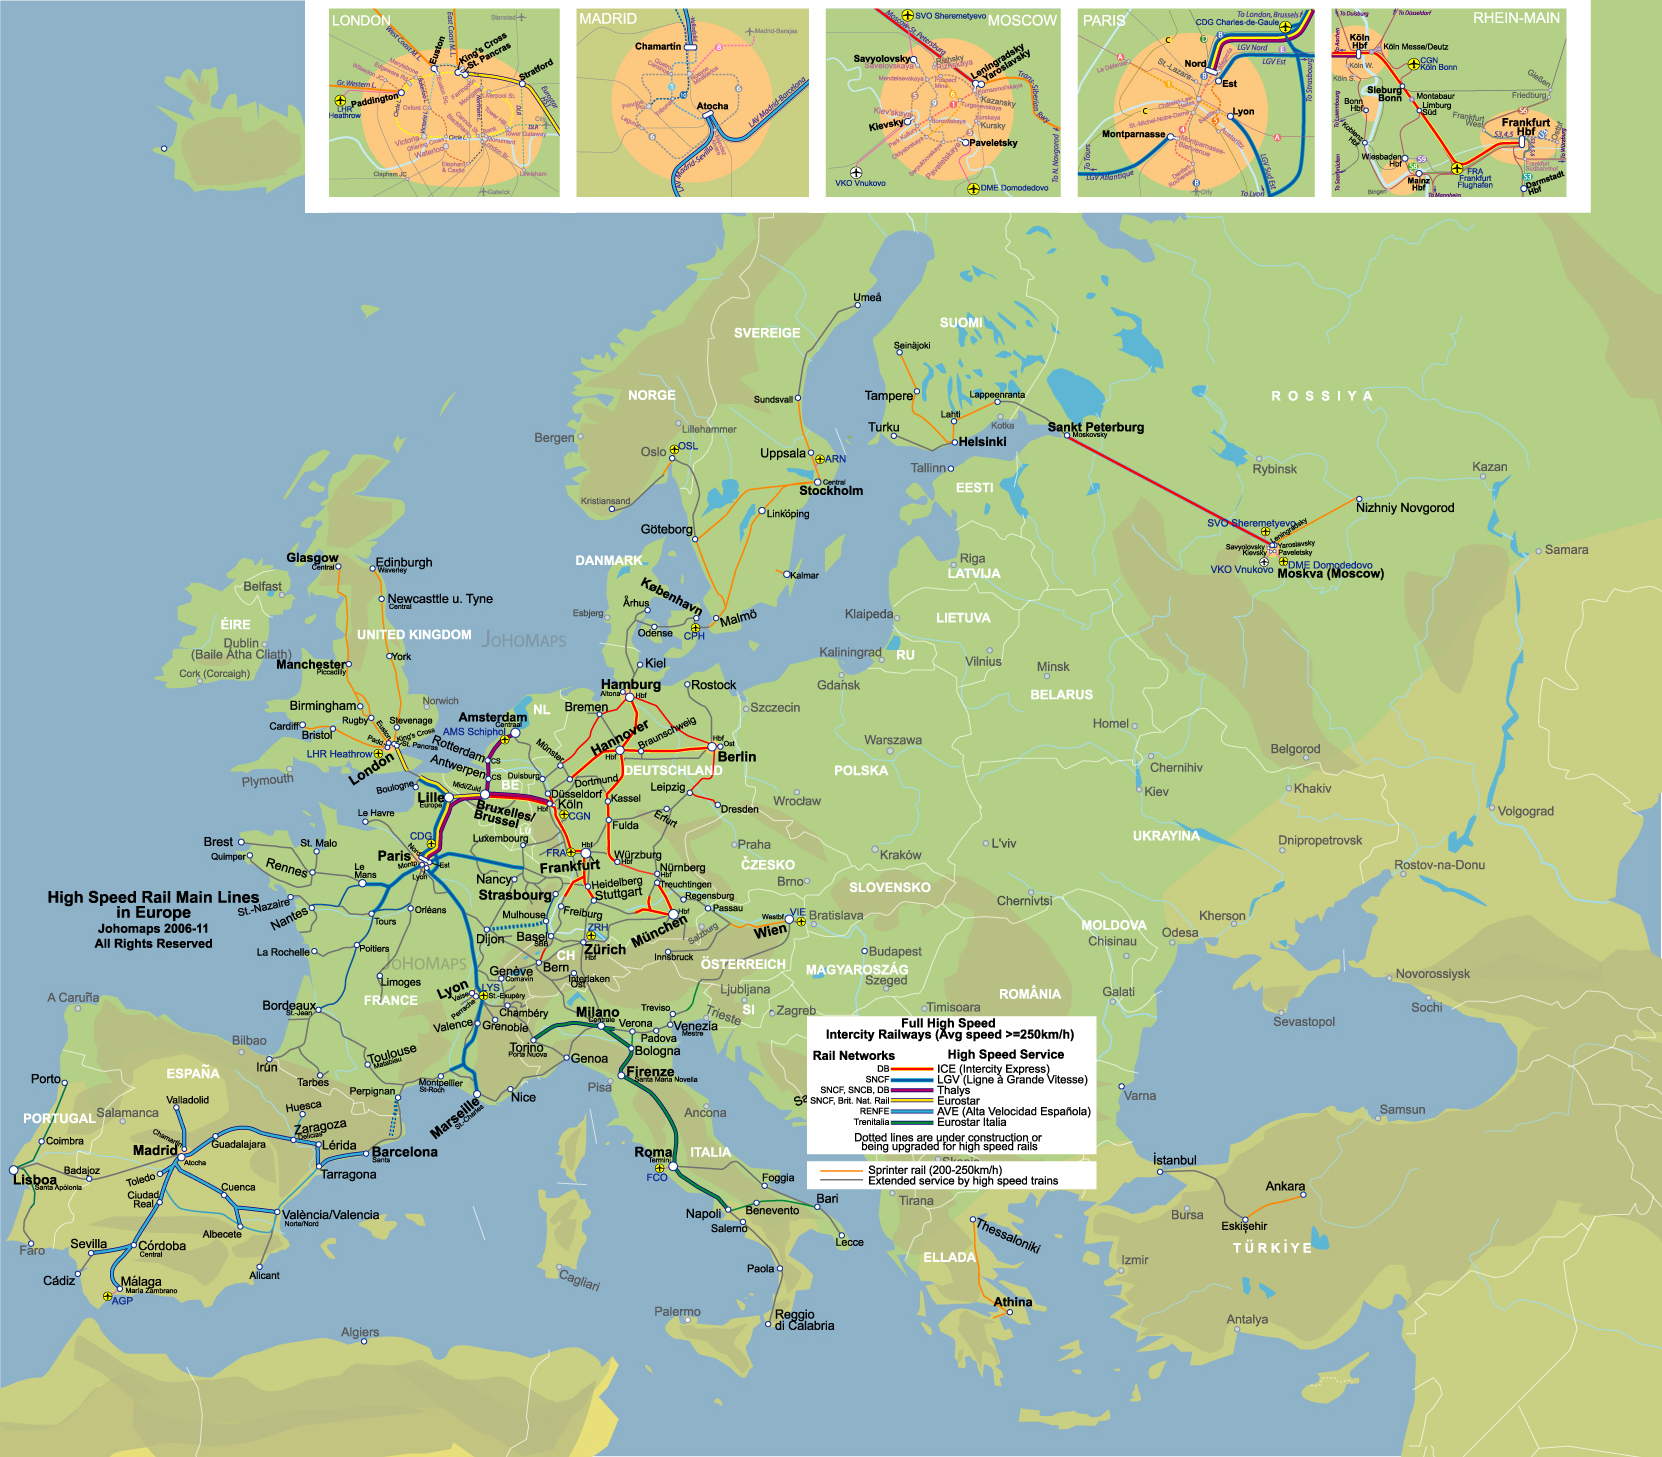 High Speed Rail of Europe